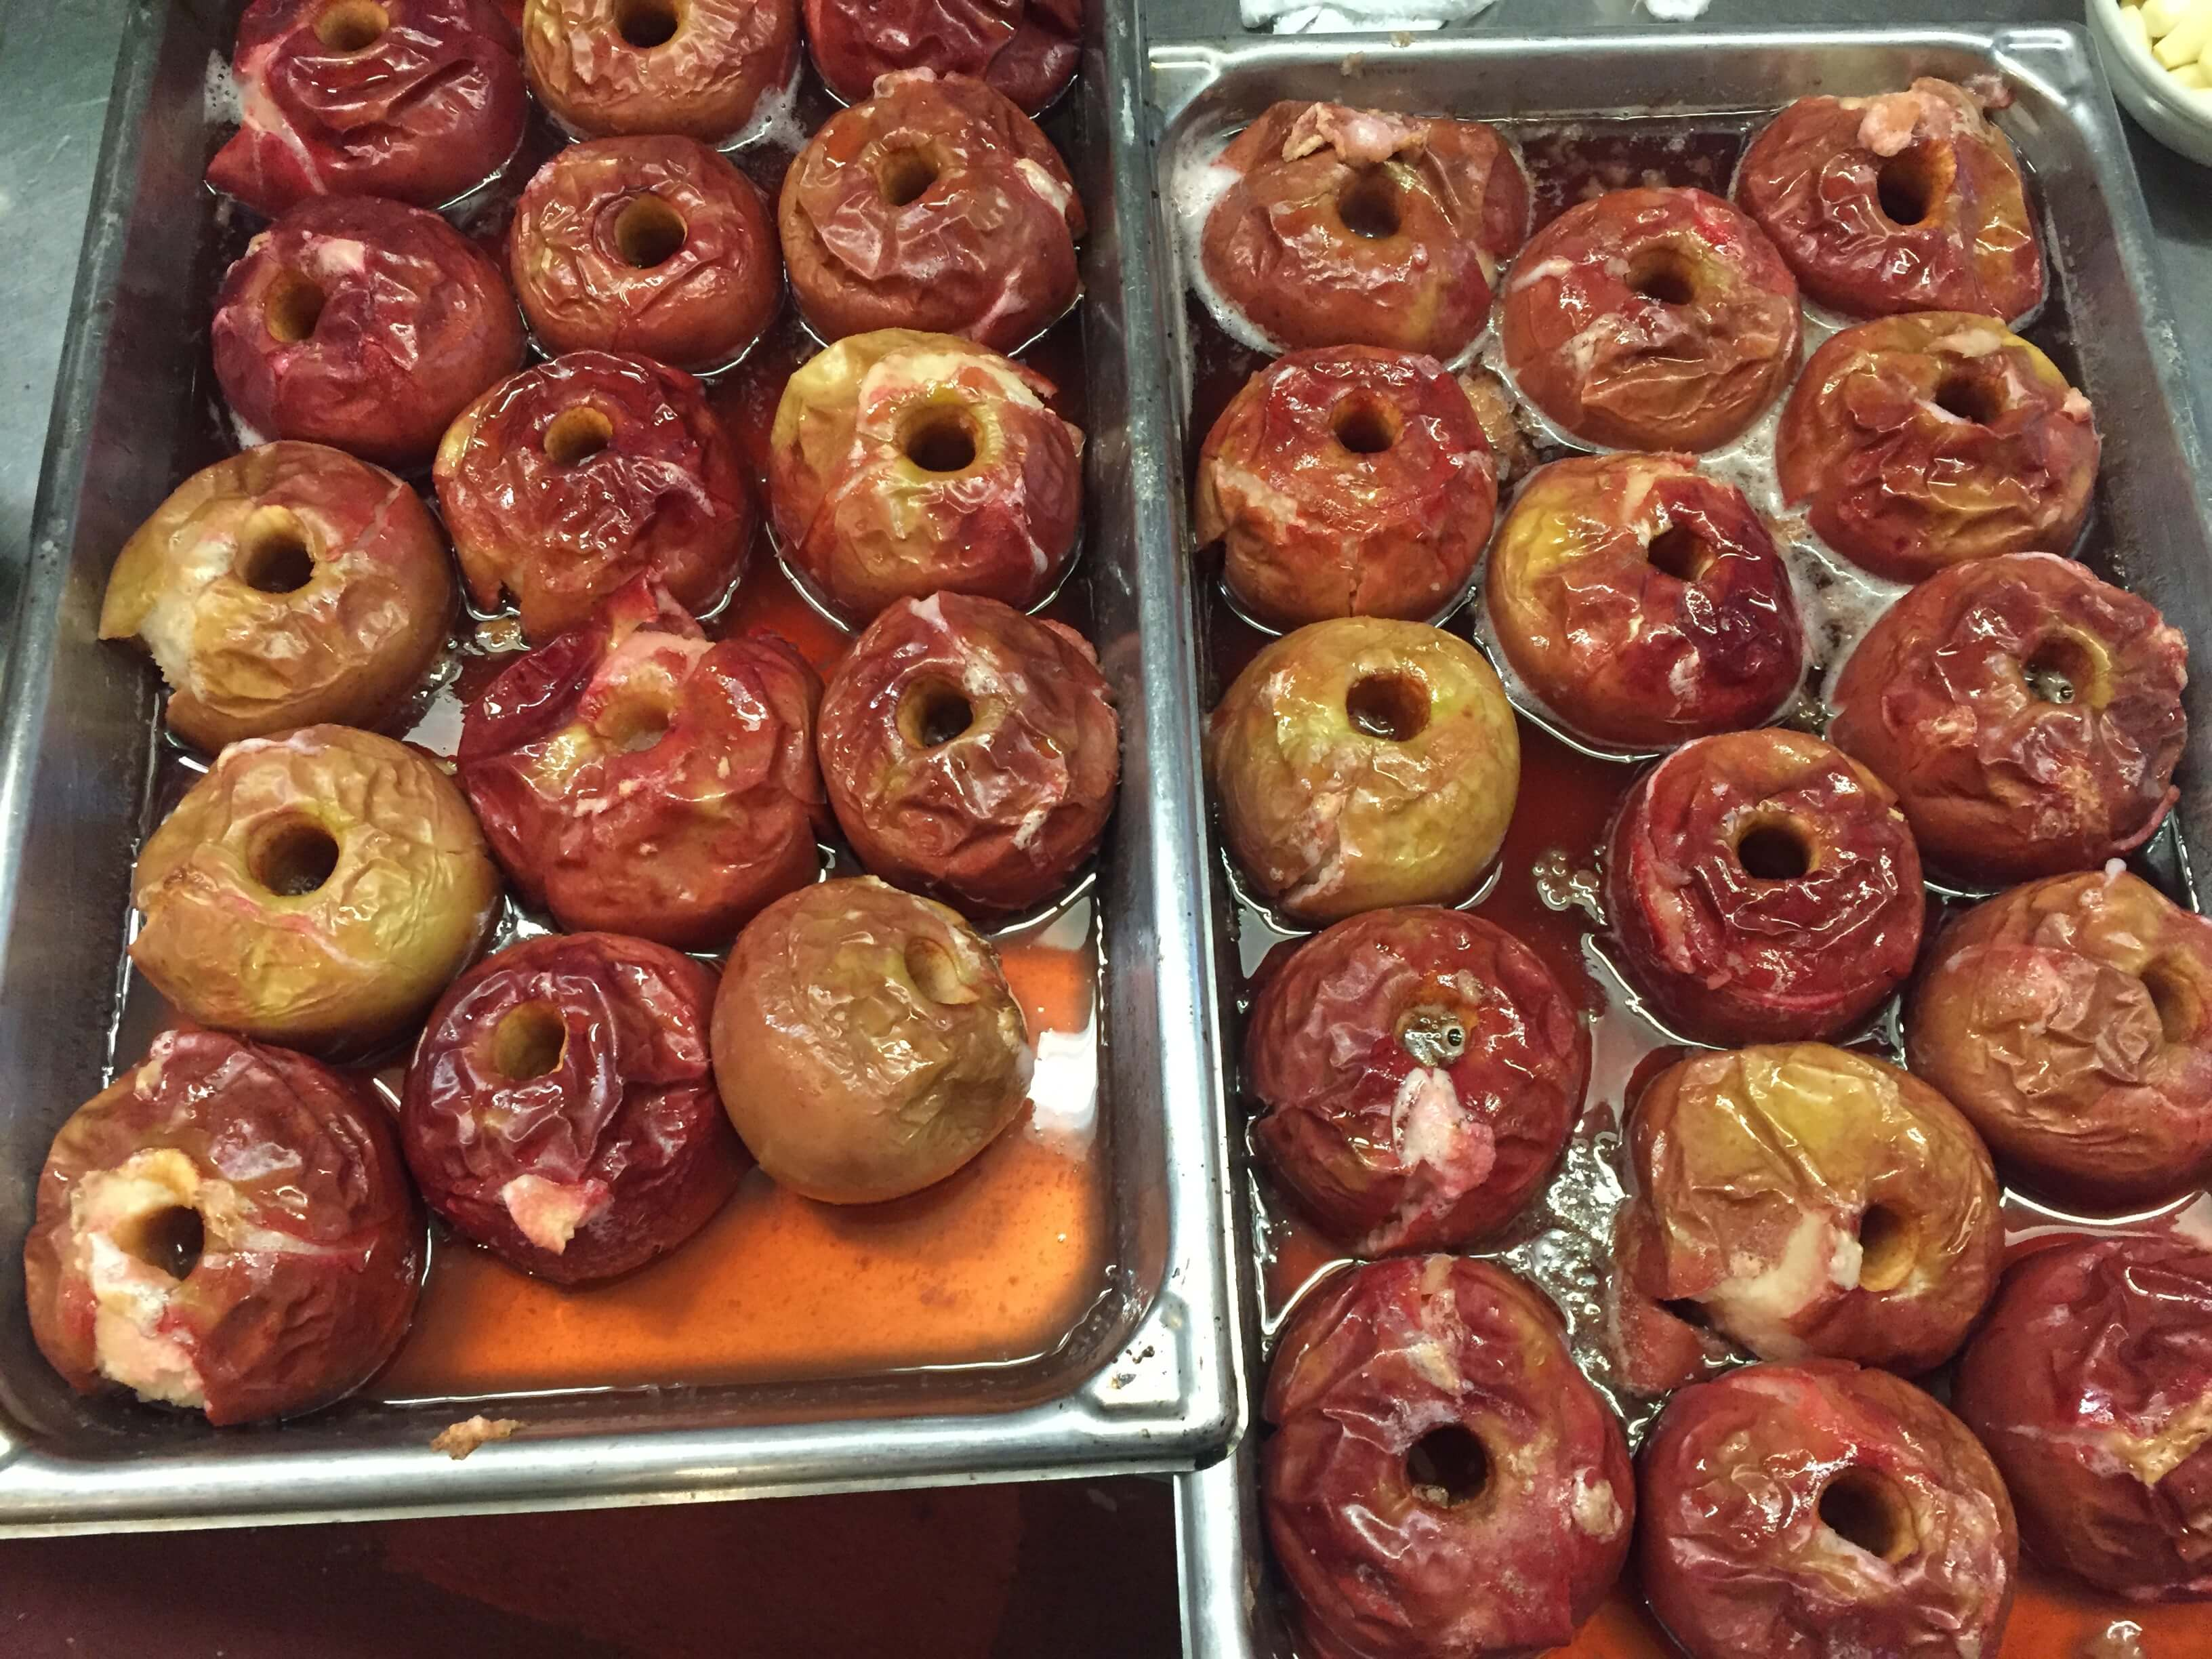 Baked Apples Are Back at Philippe's